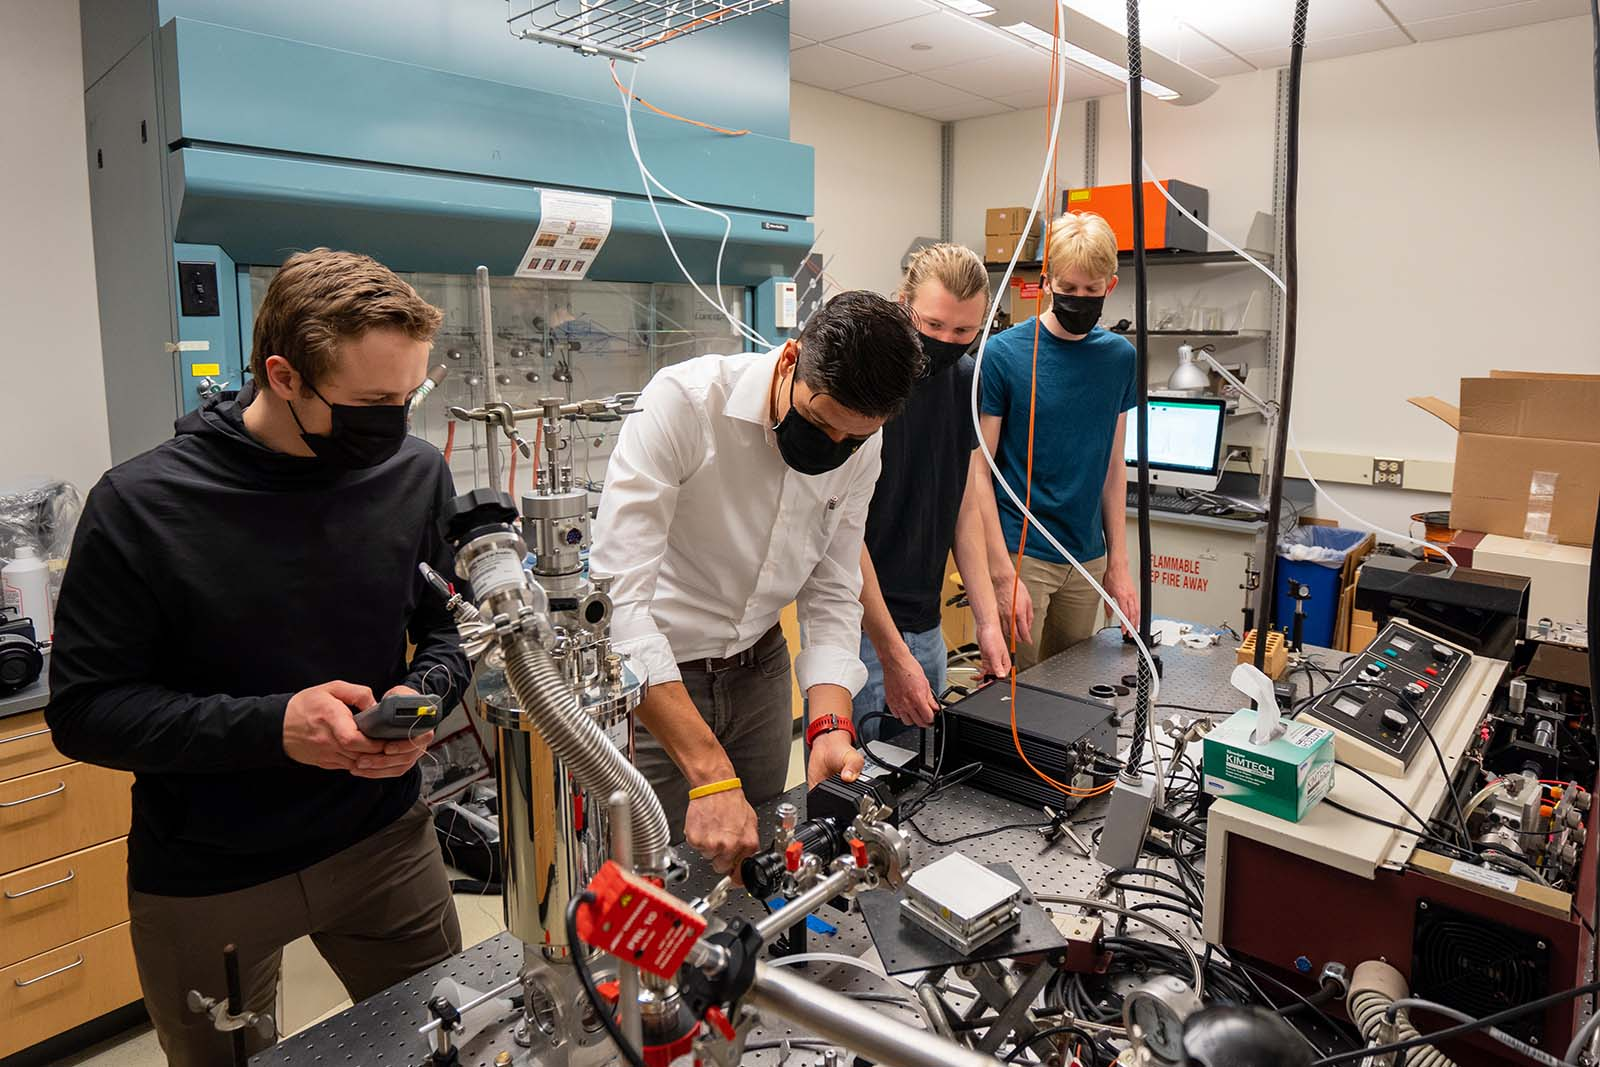 Assistant Professor of Chemistry Rodrigo Sanchez-Gonzalez (second from left) and the researchers in his Laboratory of Energy and Advanced Diagnostics (LEAD) at St. Olaf work with a new collection of scientific equipment from the NASA Langley Research Center.